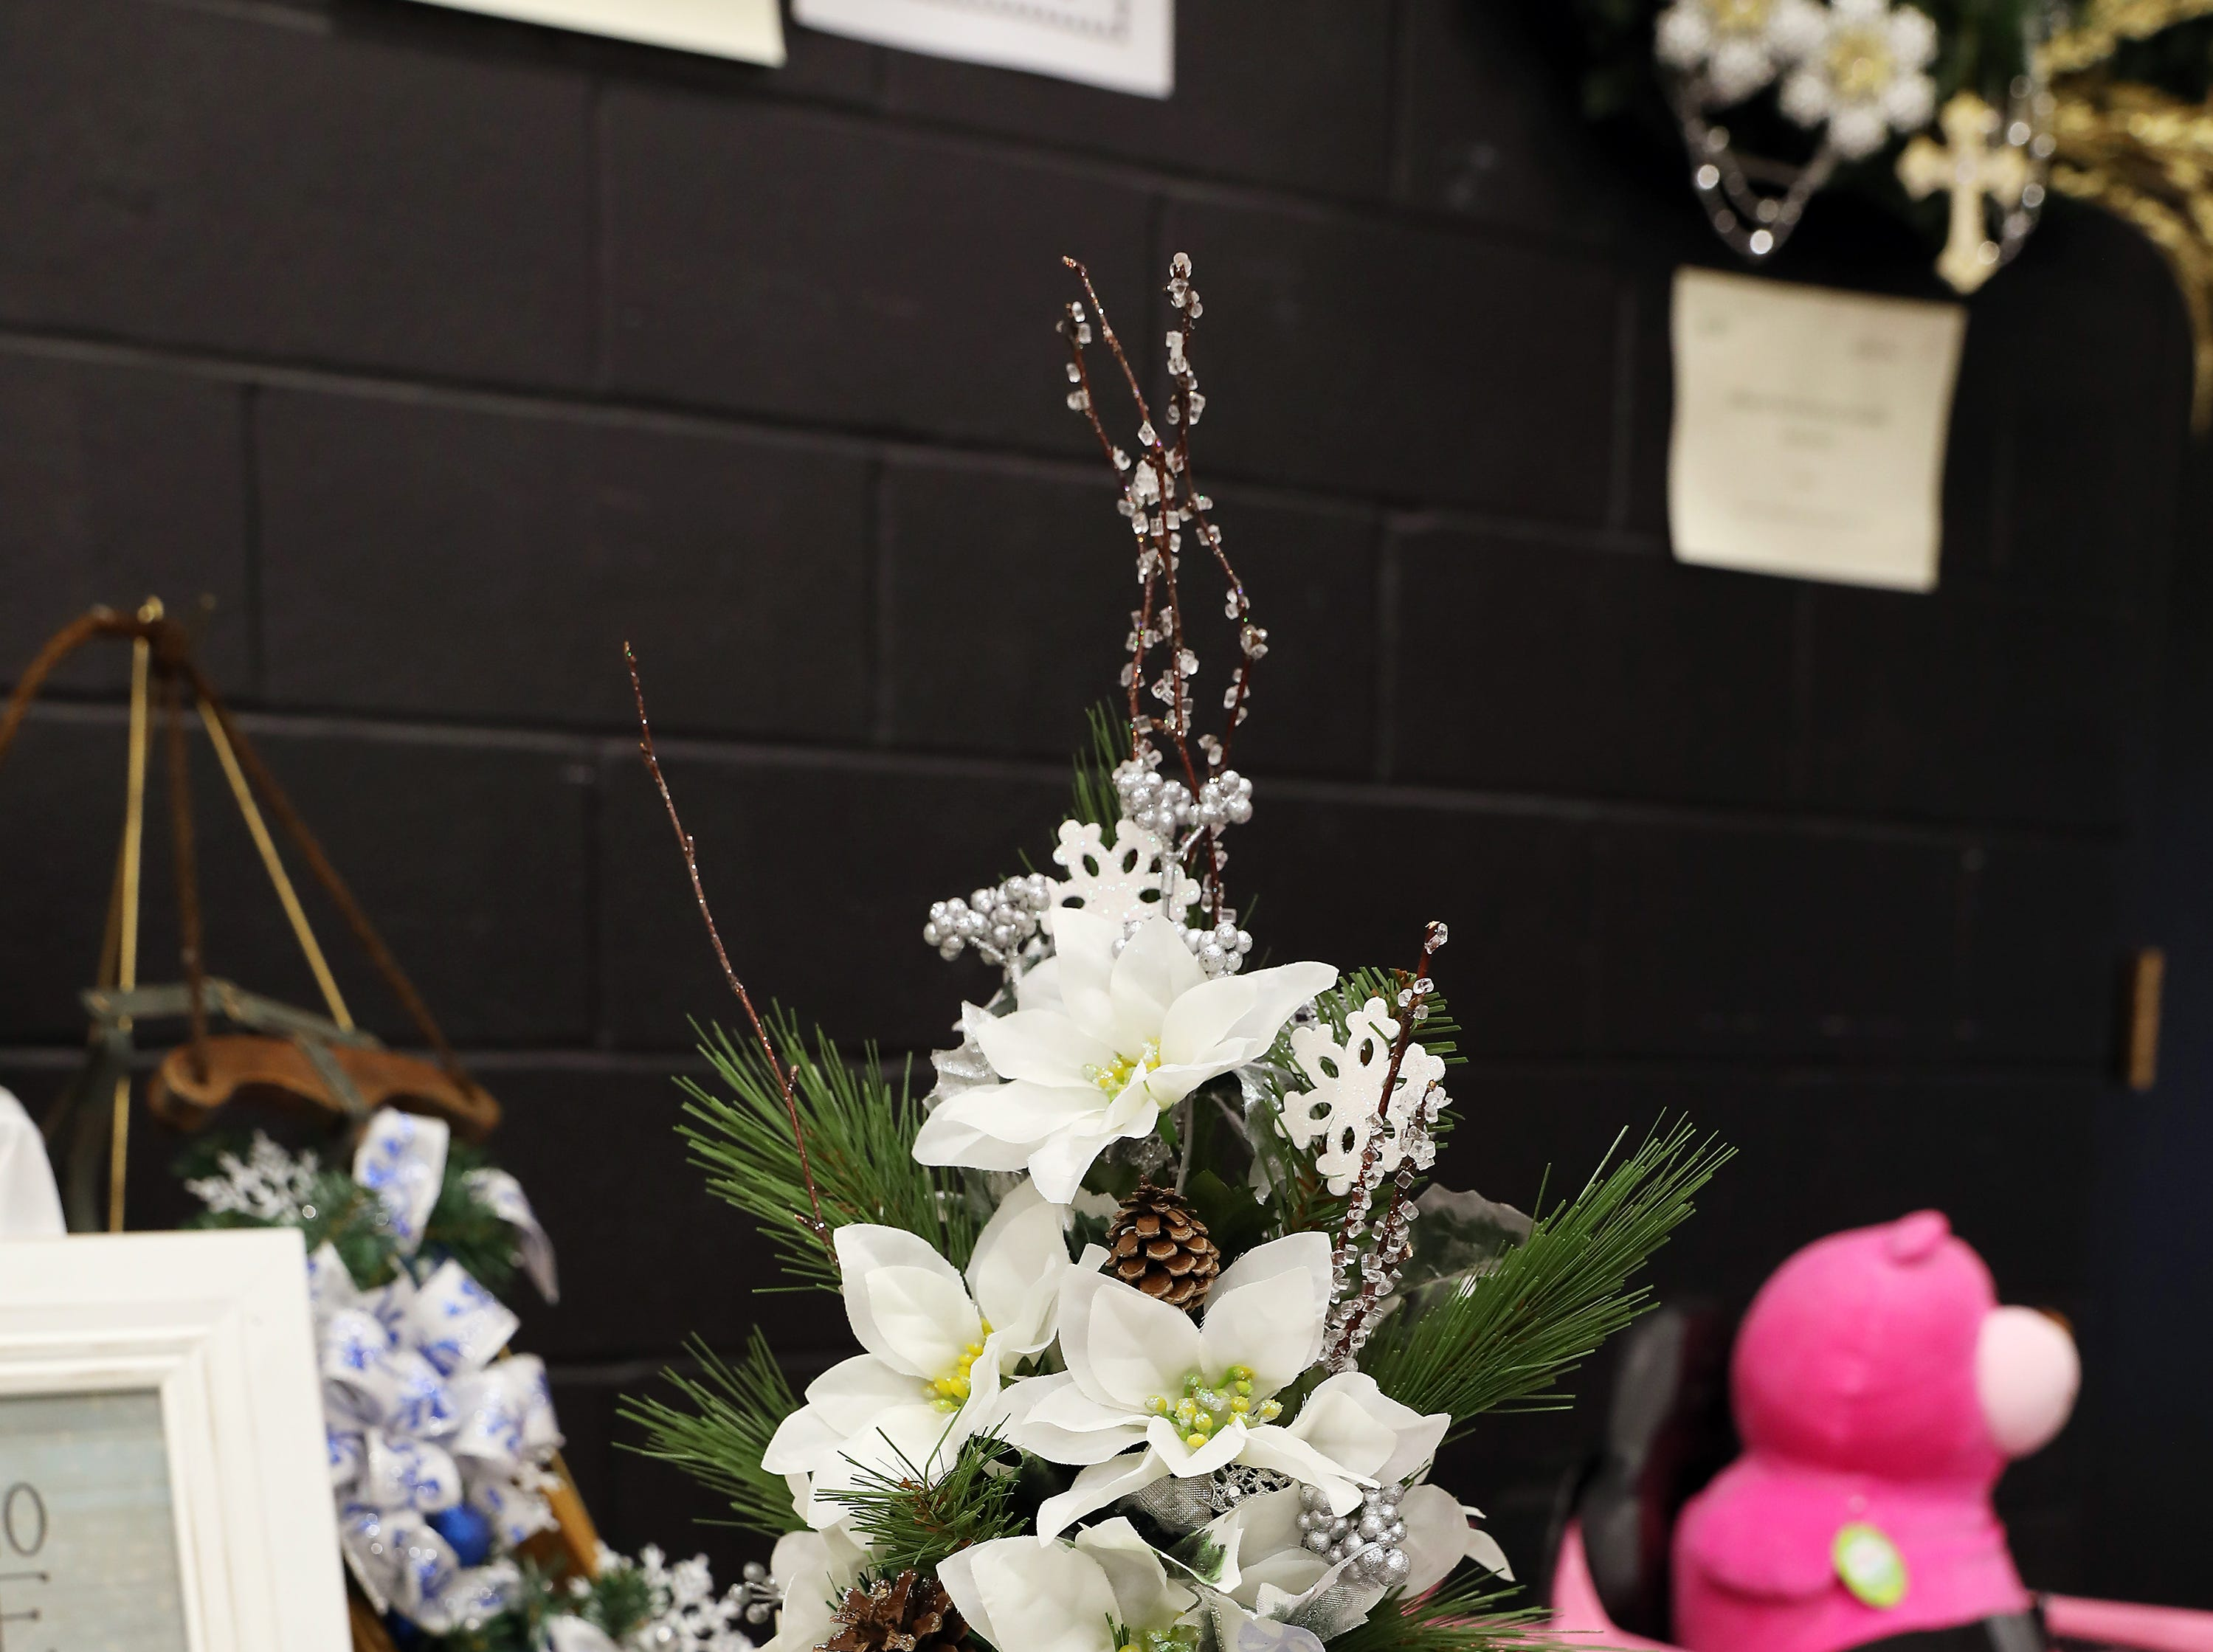 "5	9:00 AM	Committee Entry #1	Centerpiece	Snowflakes Galore	25"" tall arrangement in a snowflake vase, filled with white poinsettias, pine cones, ice branches and bow.		$25 off any Chamber event or workshop and $50 gift card to your choice Adornetto's, Giacomo's, Old Market House Inn"